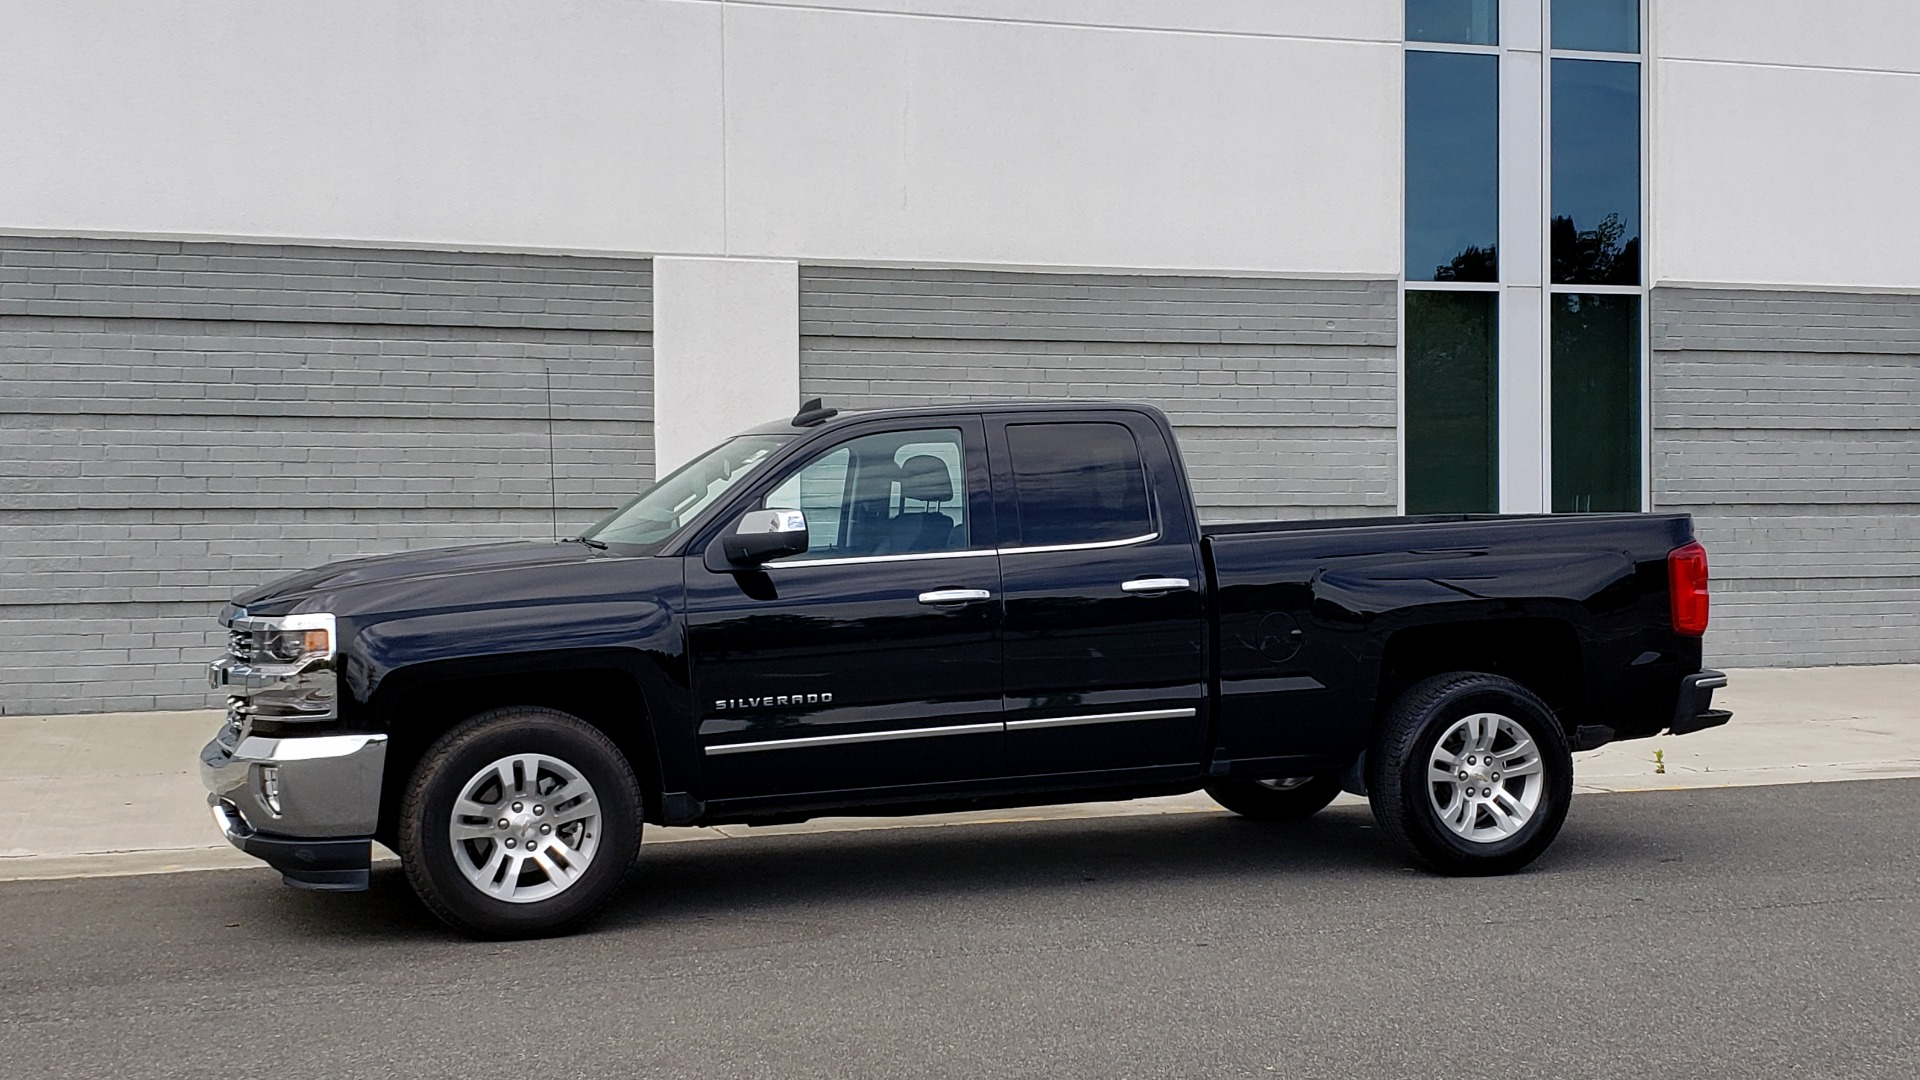 Used 2018 Chevrolet SILVERADO 1500 LTZ 1LZ / 5.3L V8 / 2WD / 6-SPD AUTO / DOUBLECAB / REARVIEW for sale Sold at Formula Imports in Charlotte NC 28227 3